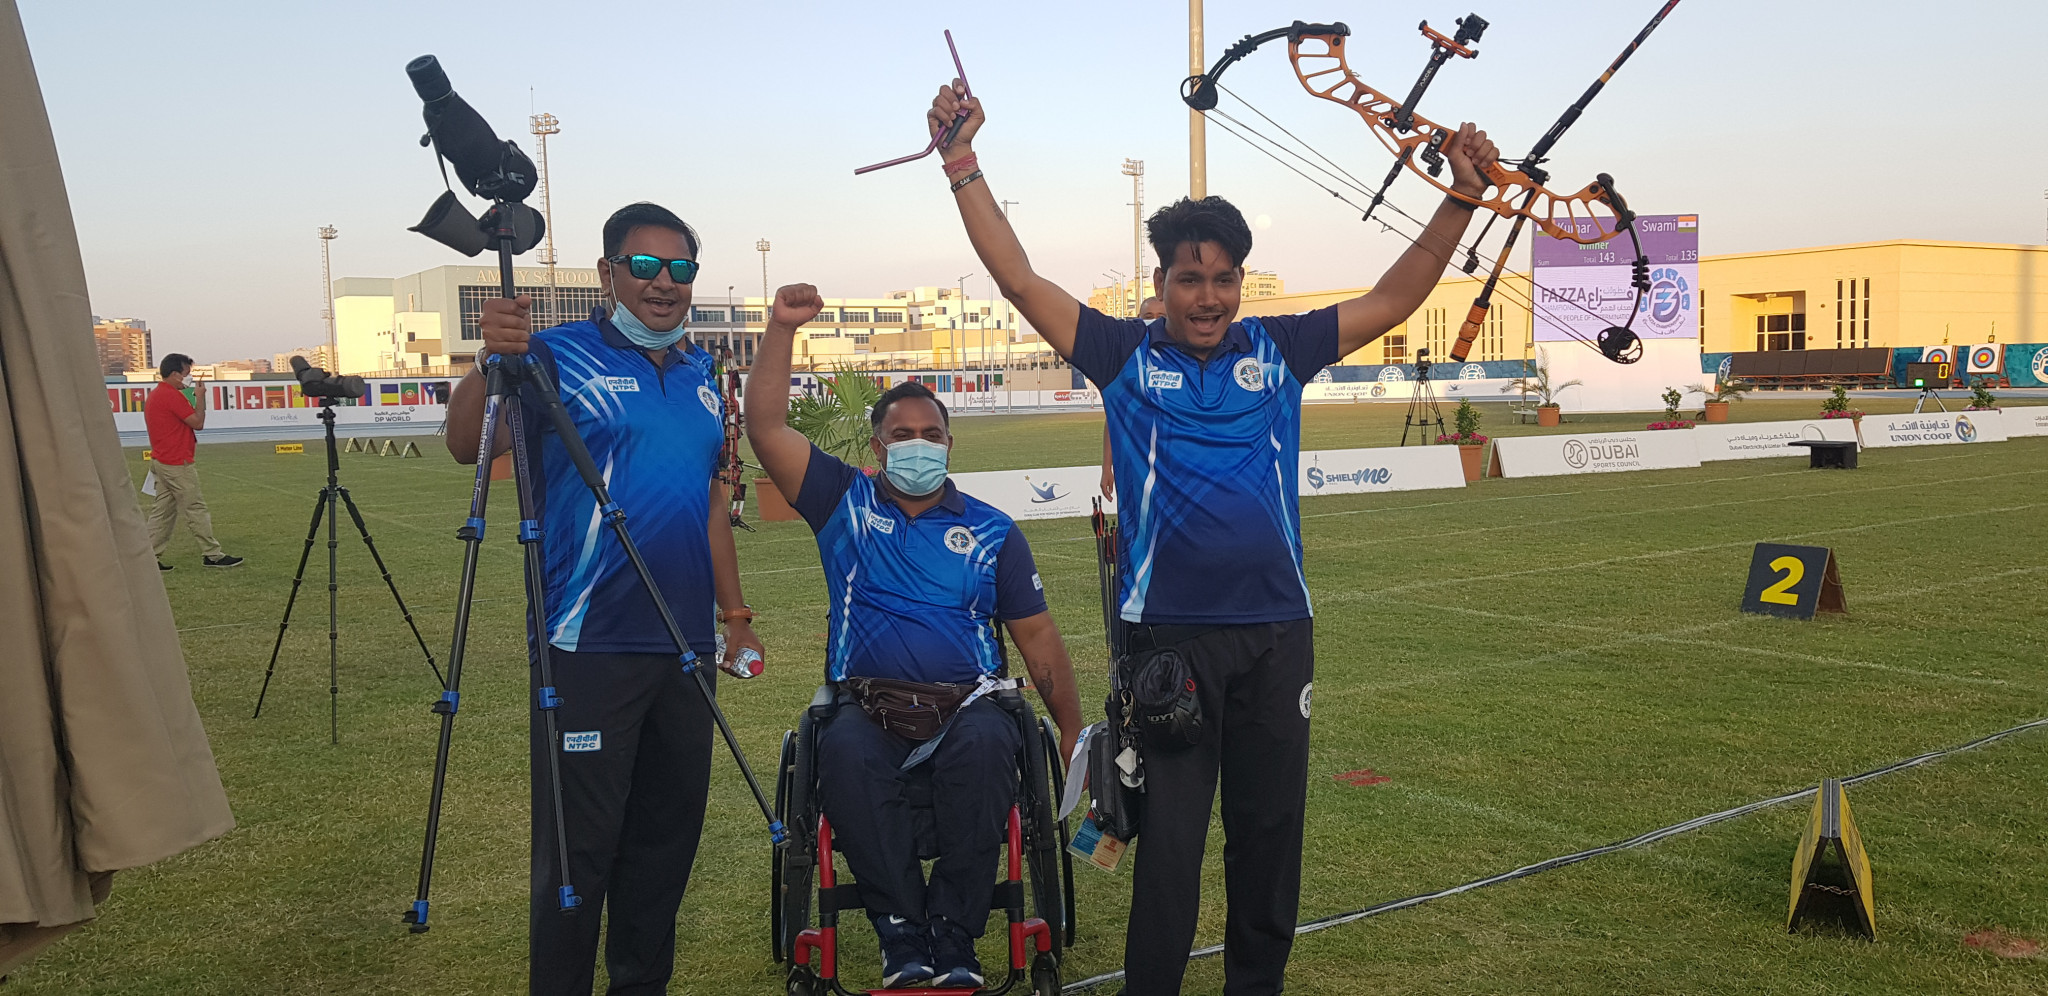 Rakesh Kumar, centre, and Shyam Sundar Swami, right, celebrate their respective gold and silver medals in the men's compound open ©Fazza LOC/PCI